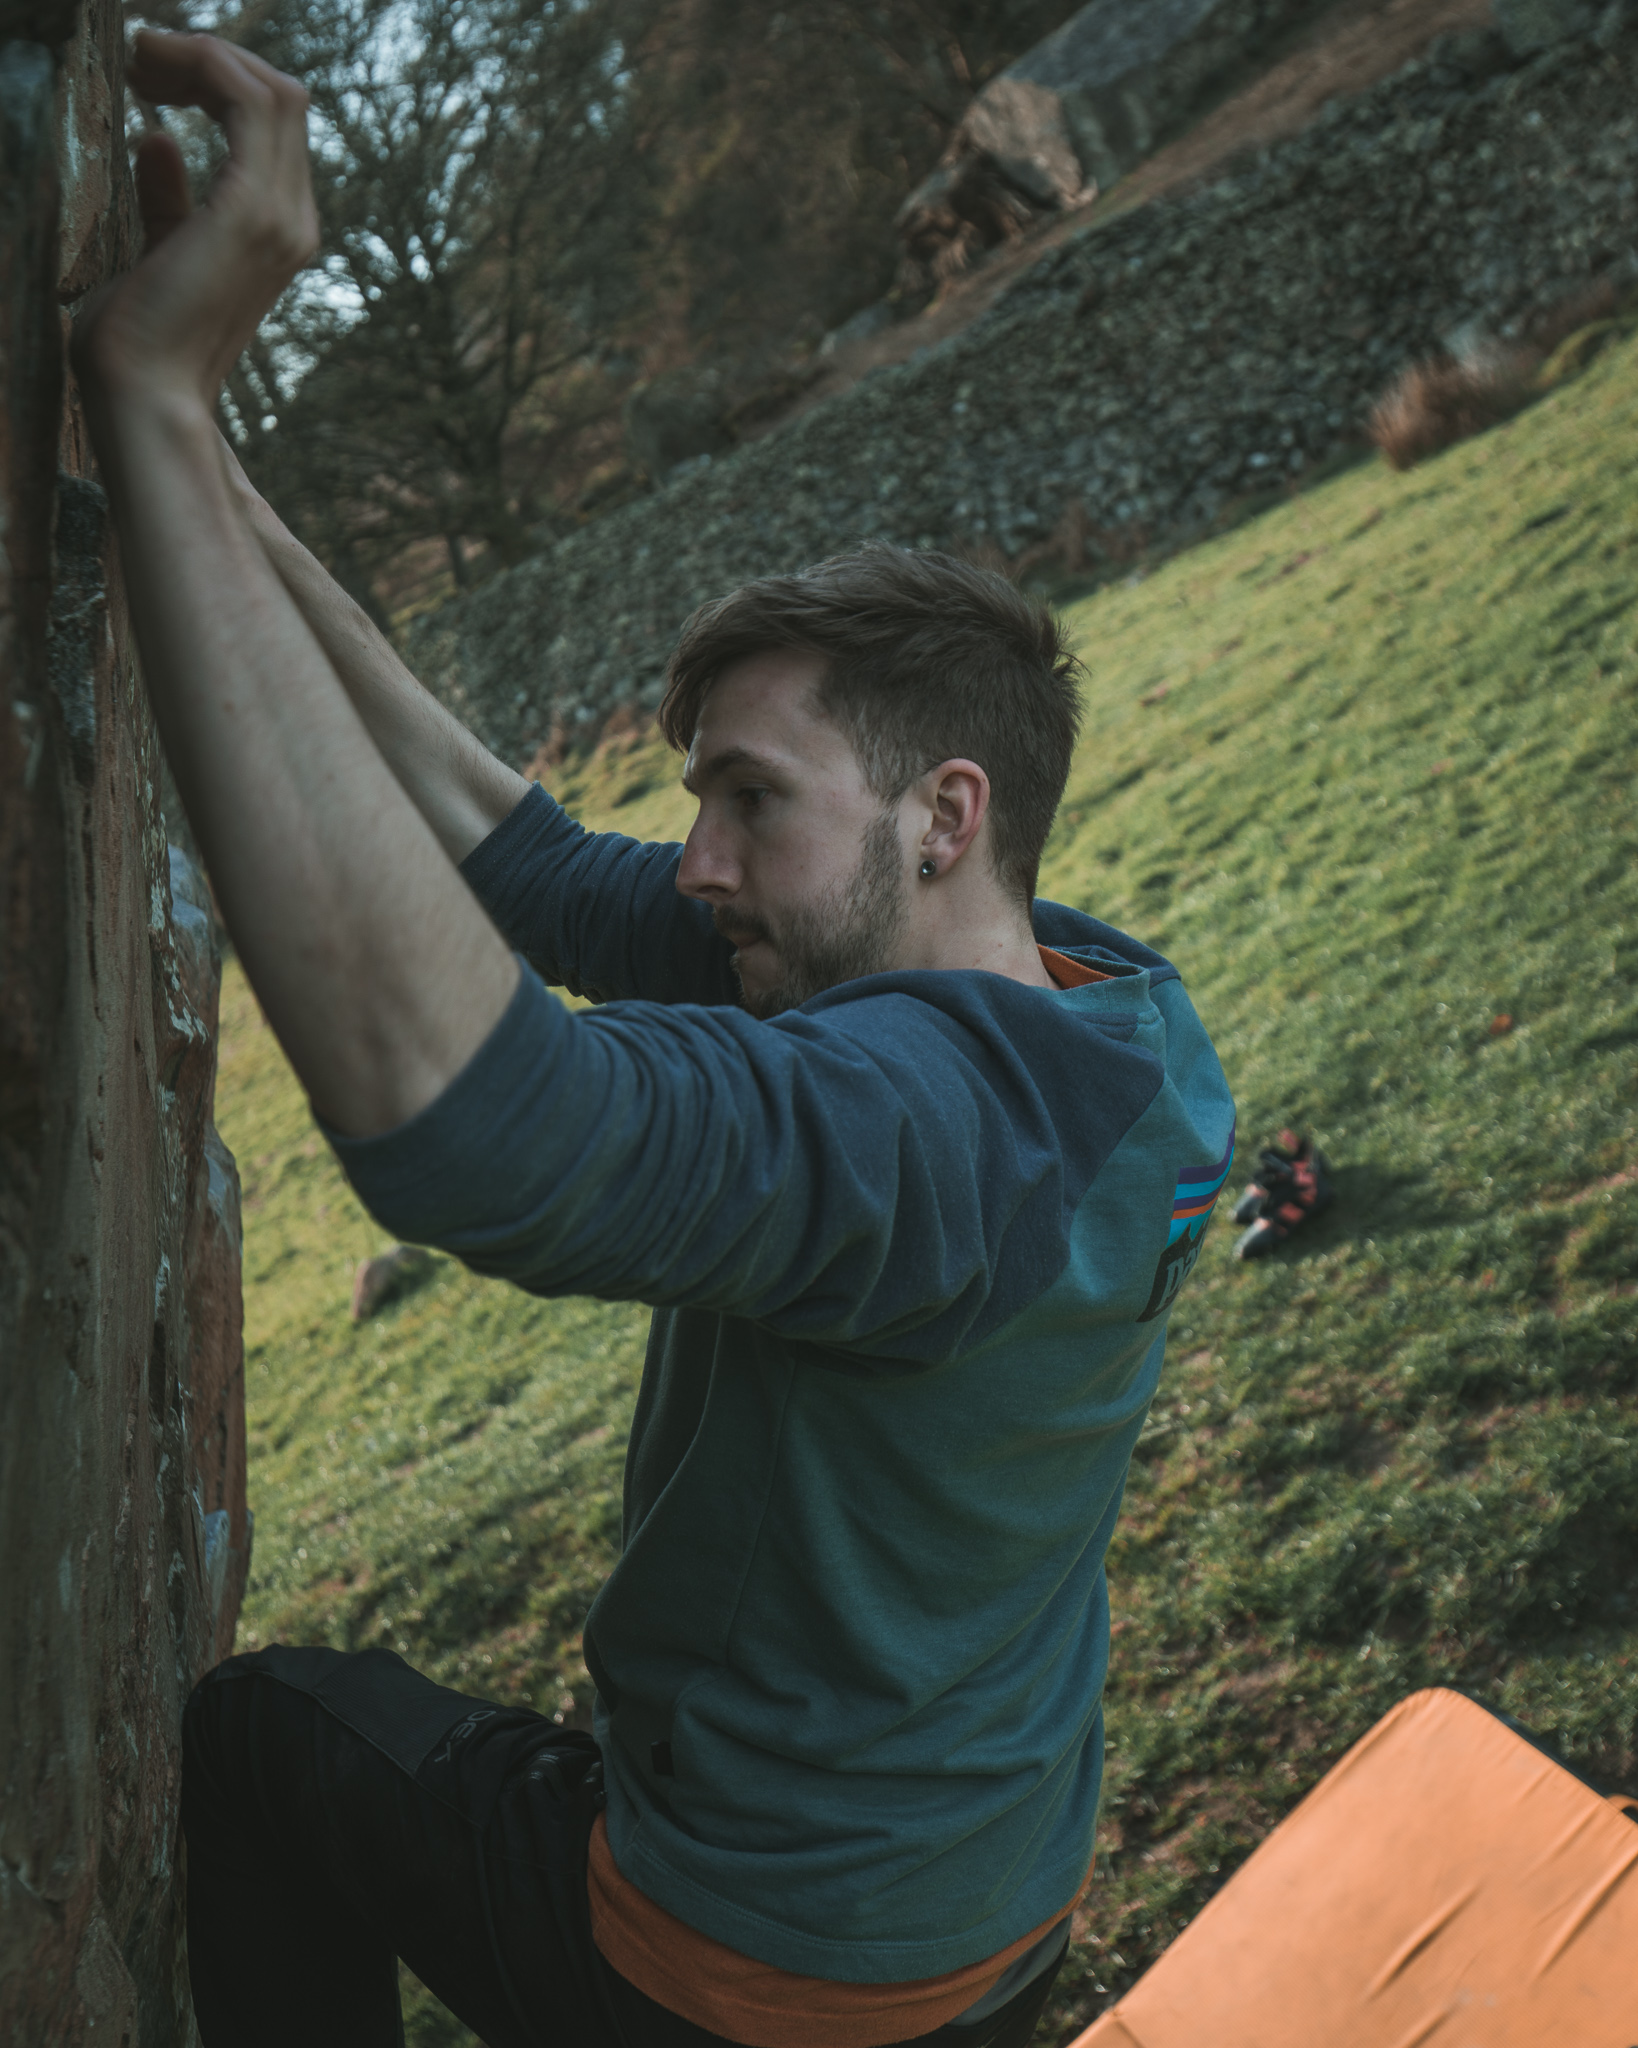 bouldering badger rock 6a